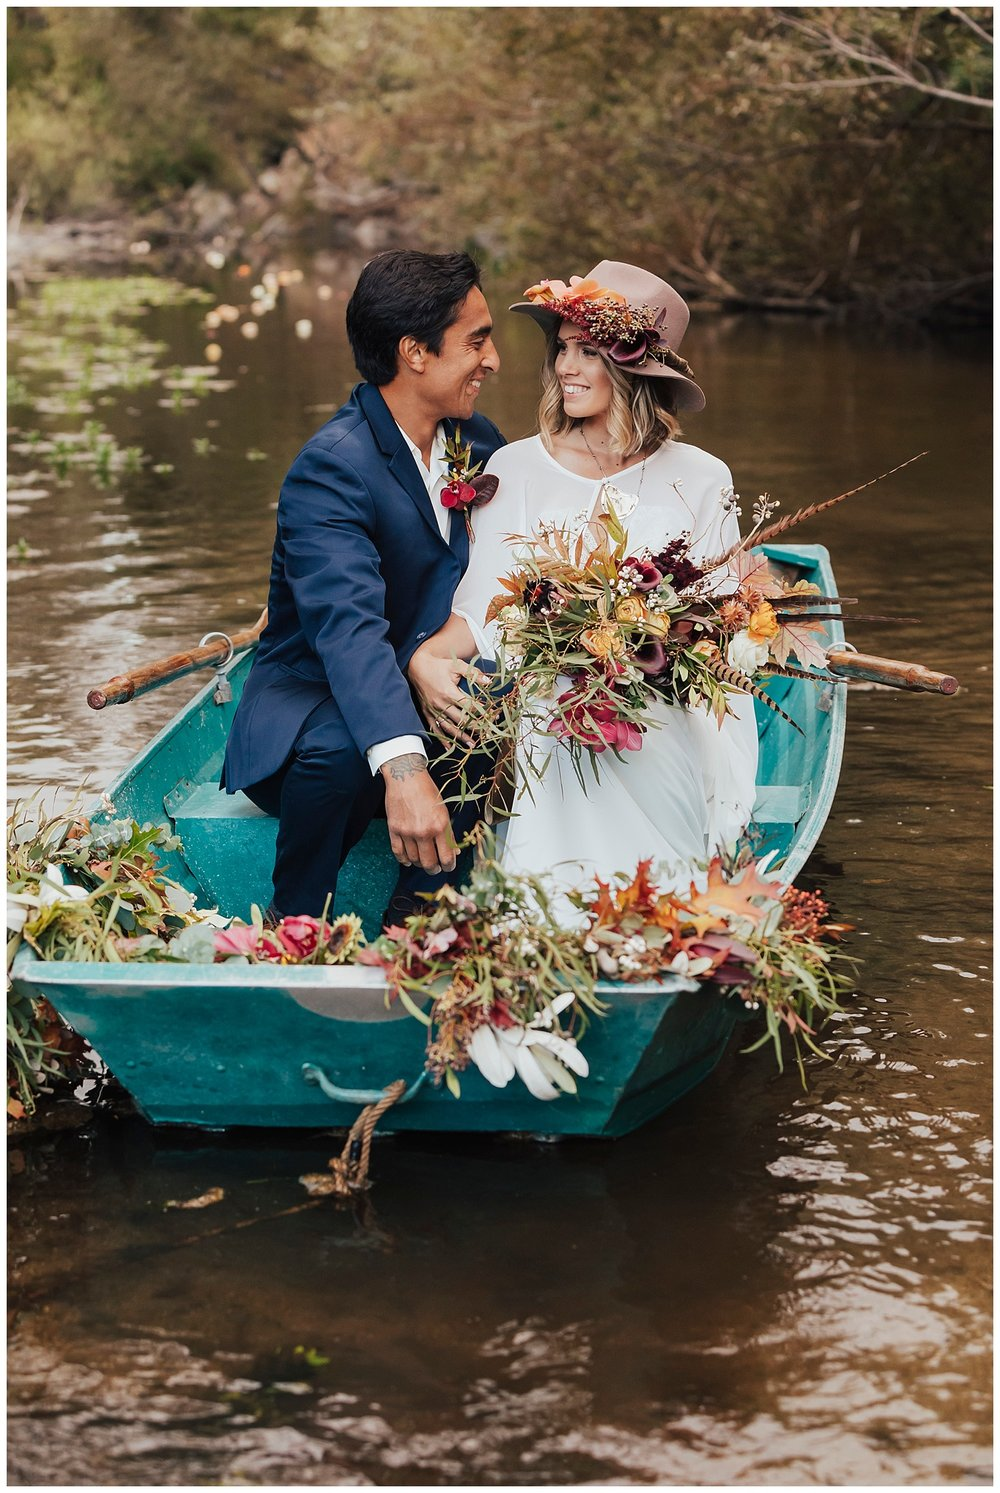 carol oliva photography boho river bride